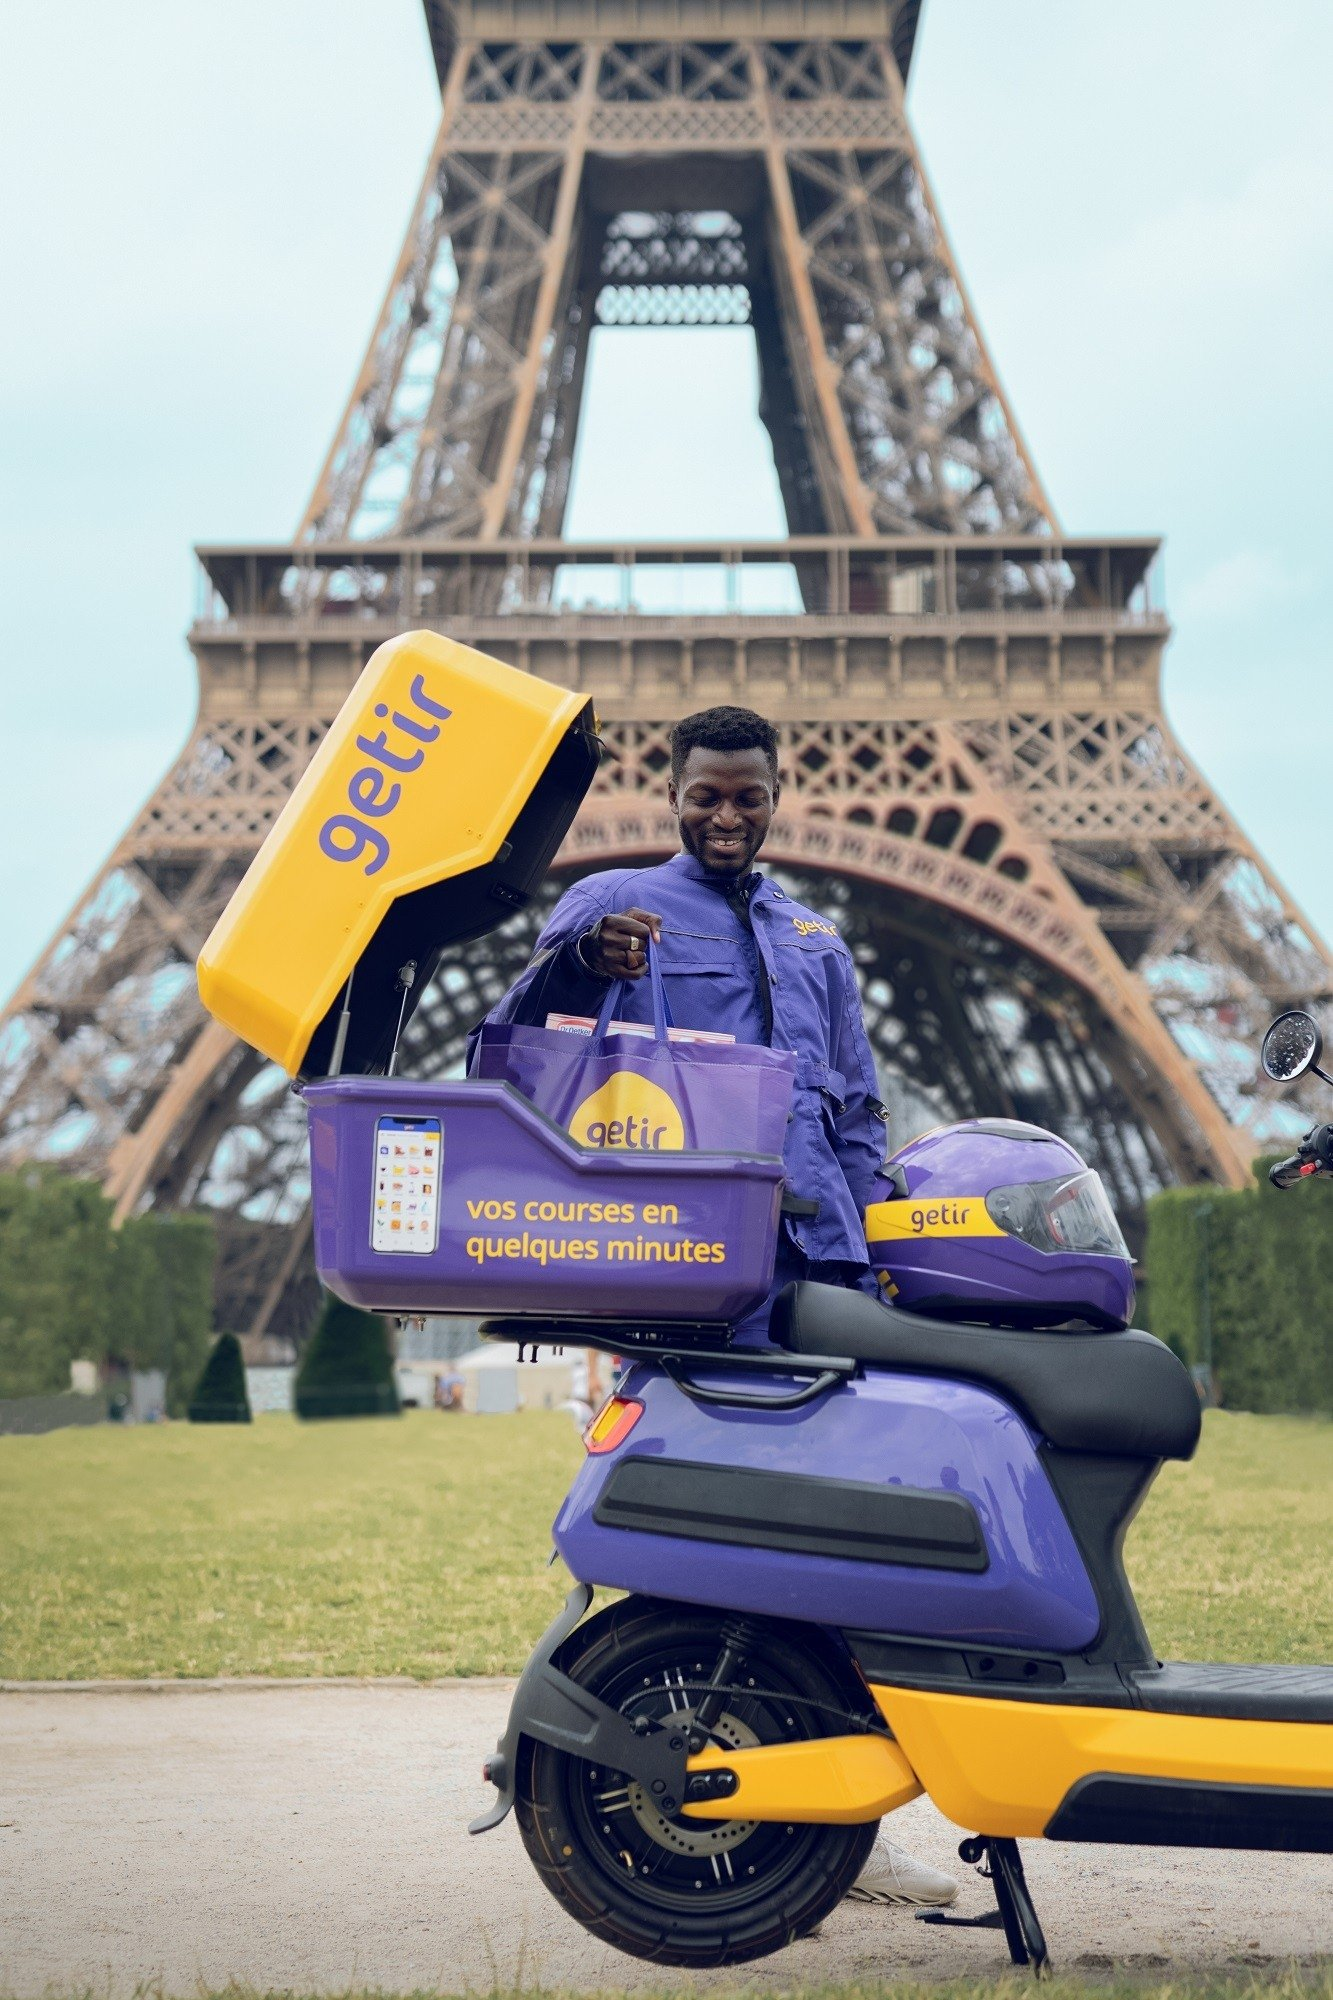 A Getir courier poses for a photo near the Eiffel Tower in Paris, France, June 22, 2021. (IHA Photo)